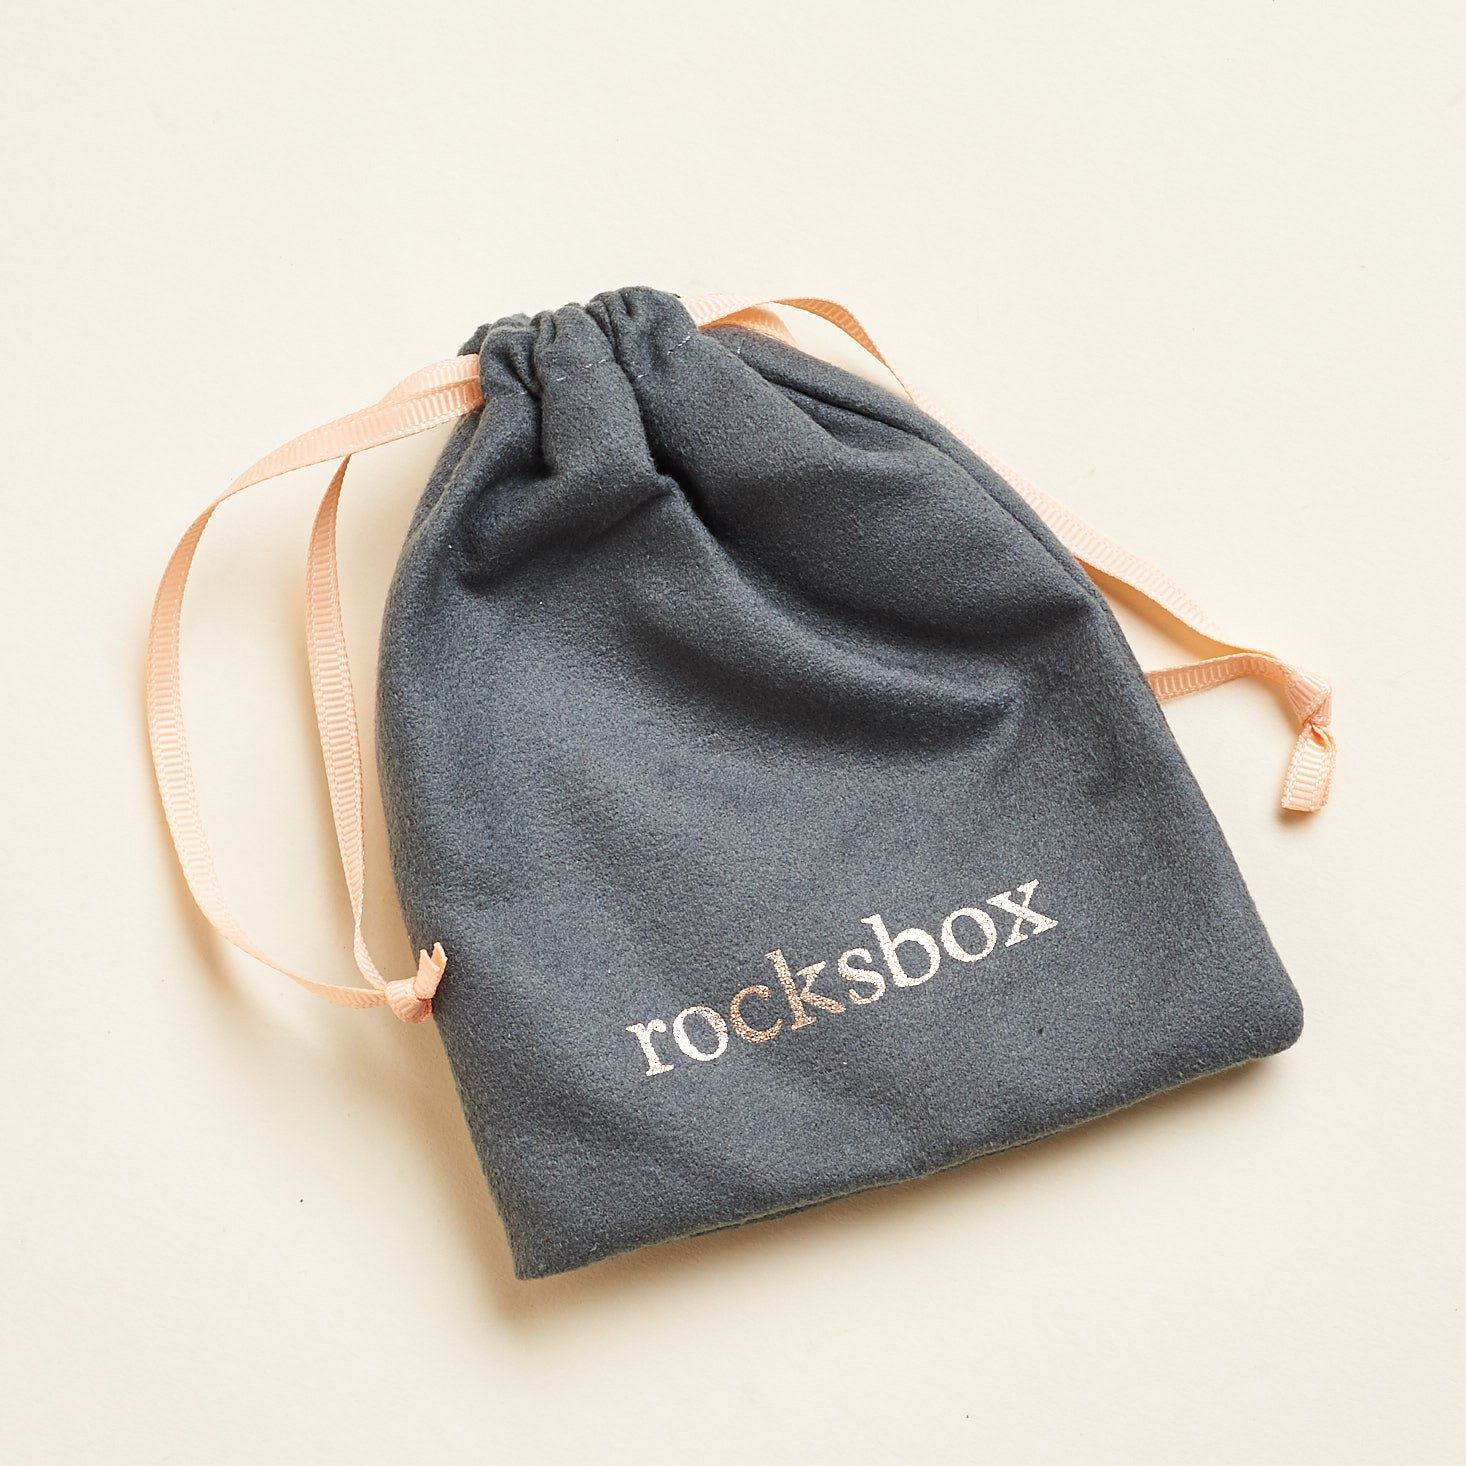 rocks box pouch